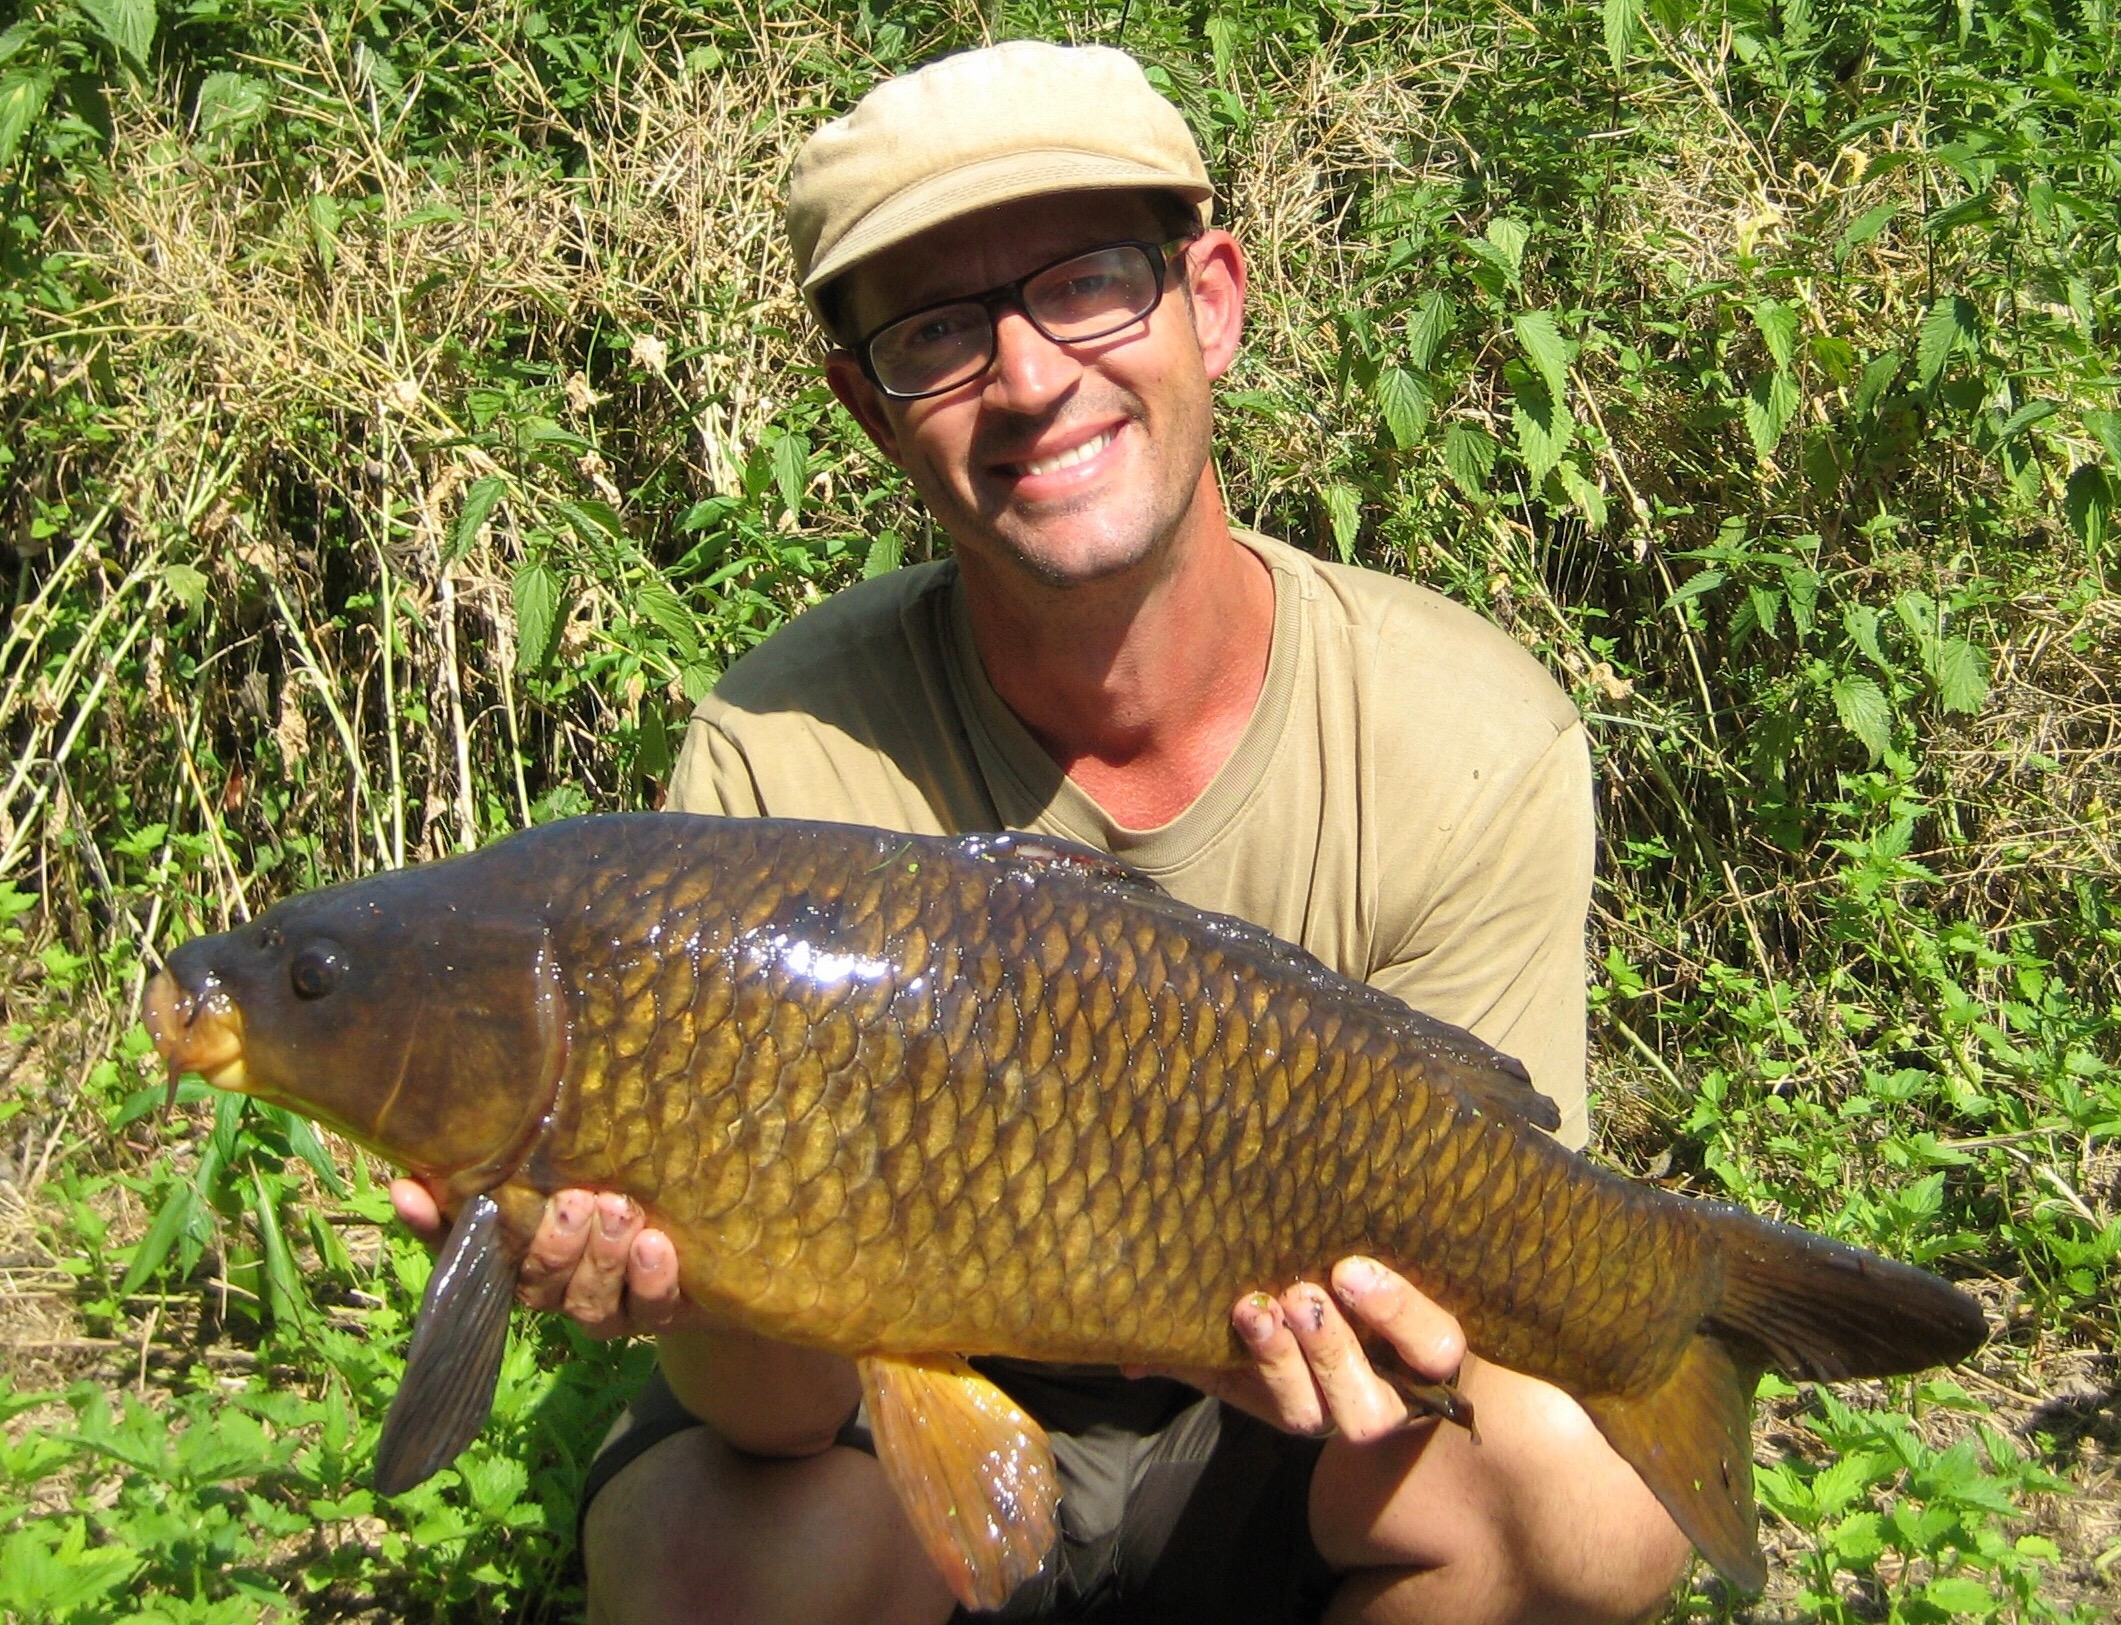 Carp Fishing River Lea Lee throughout the spring and summer